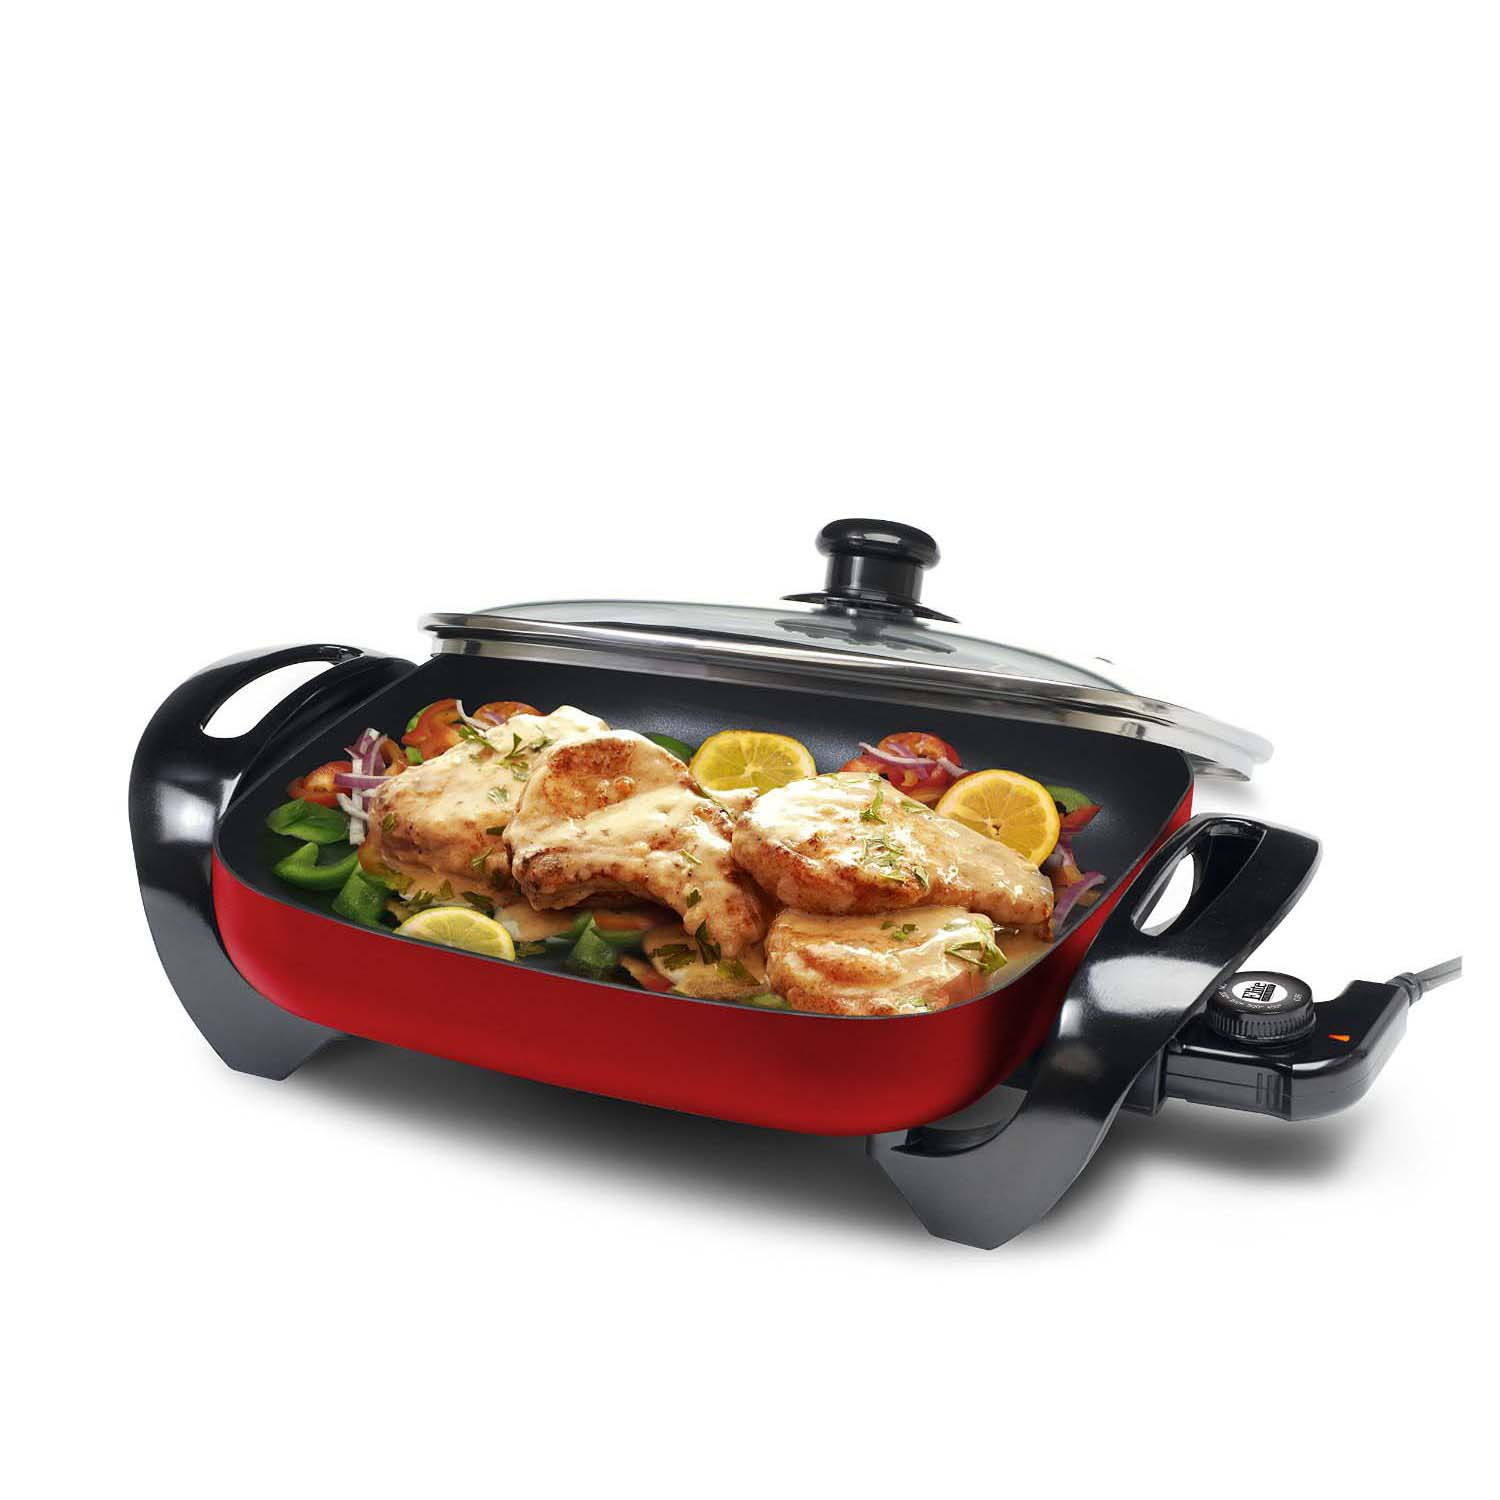 Red Electric Skillet with Glass Lid